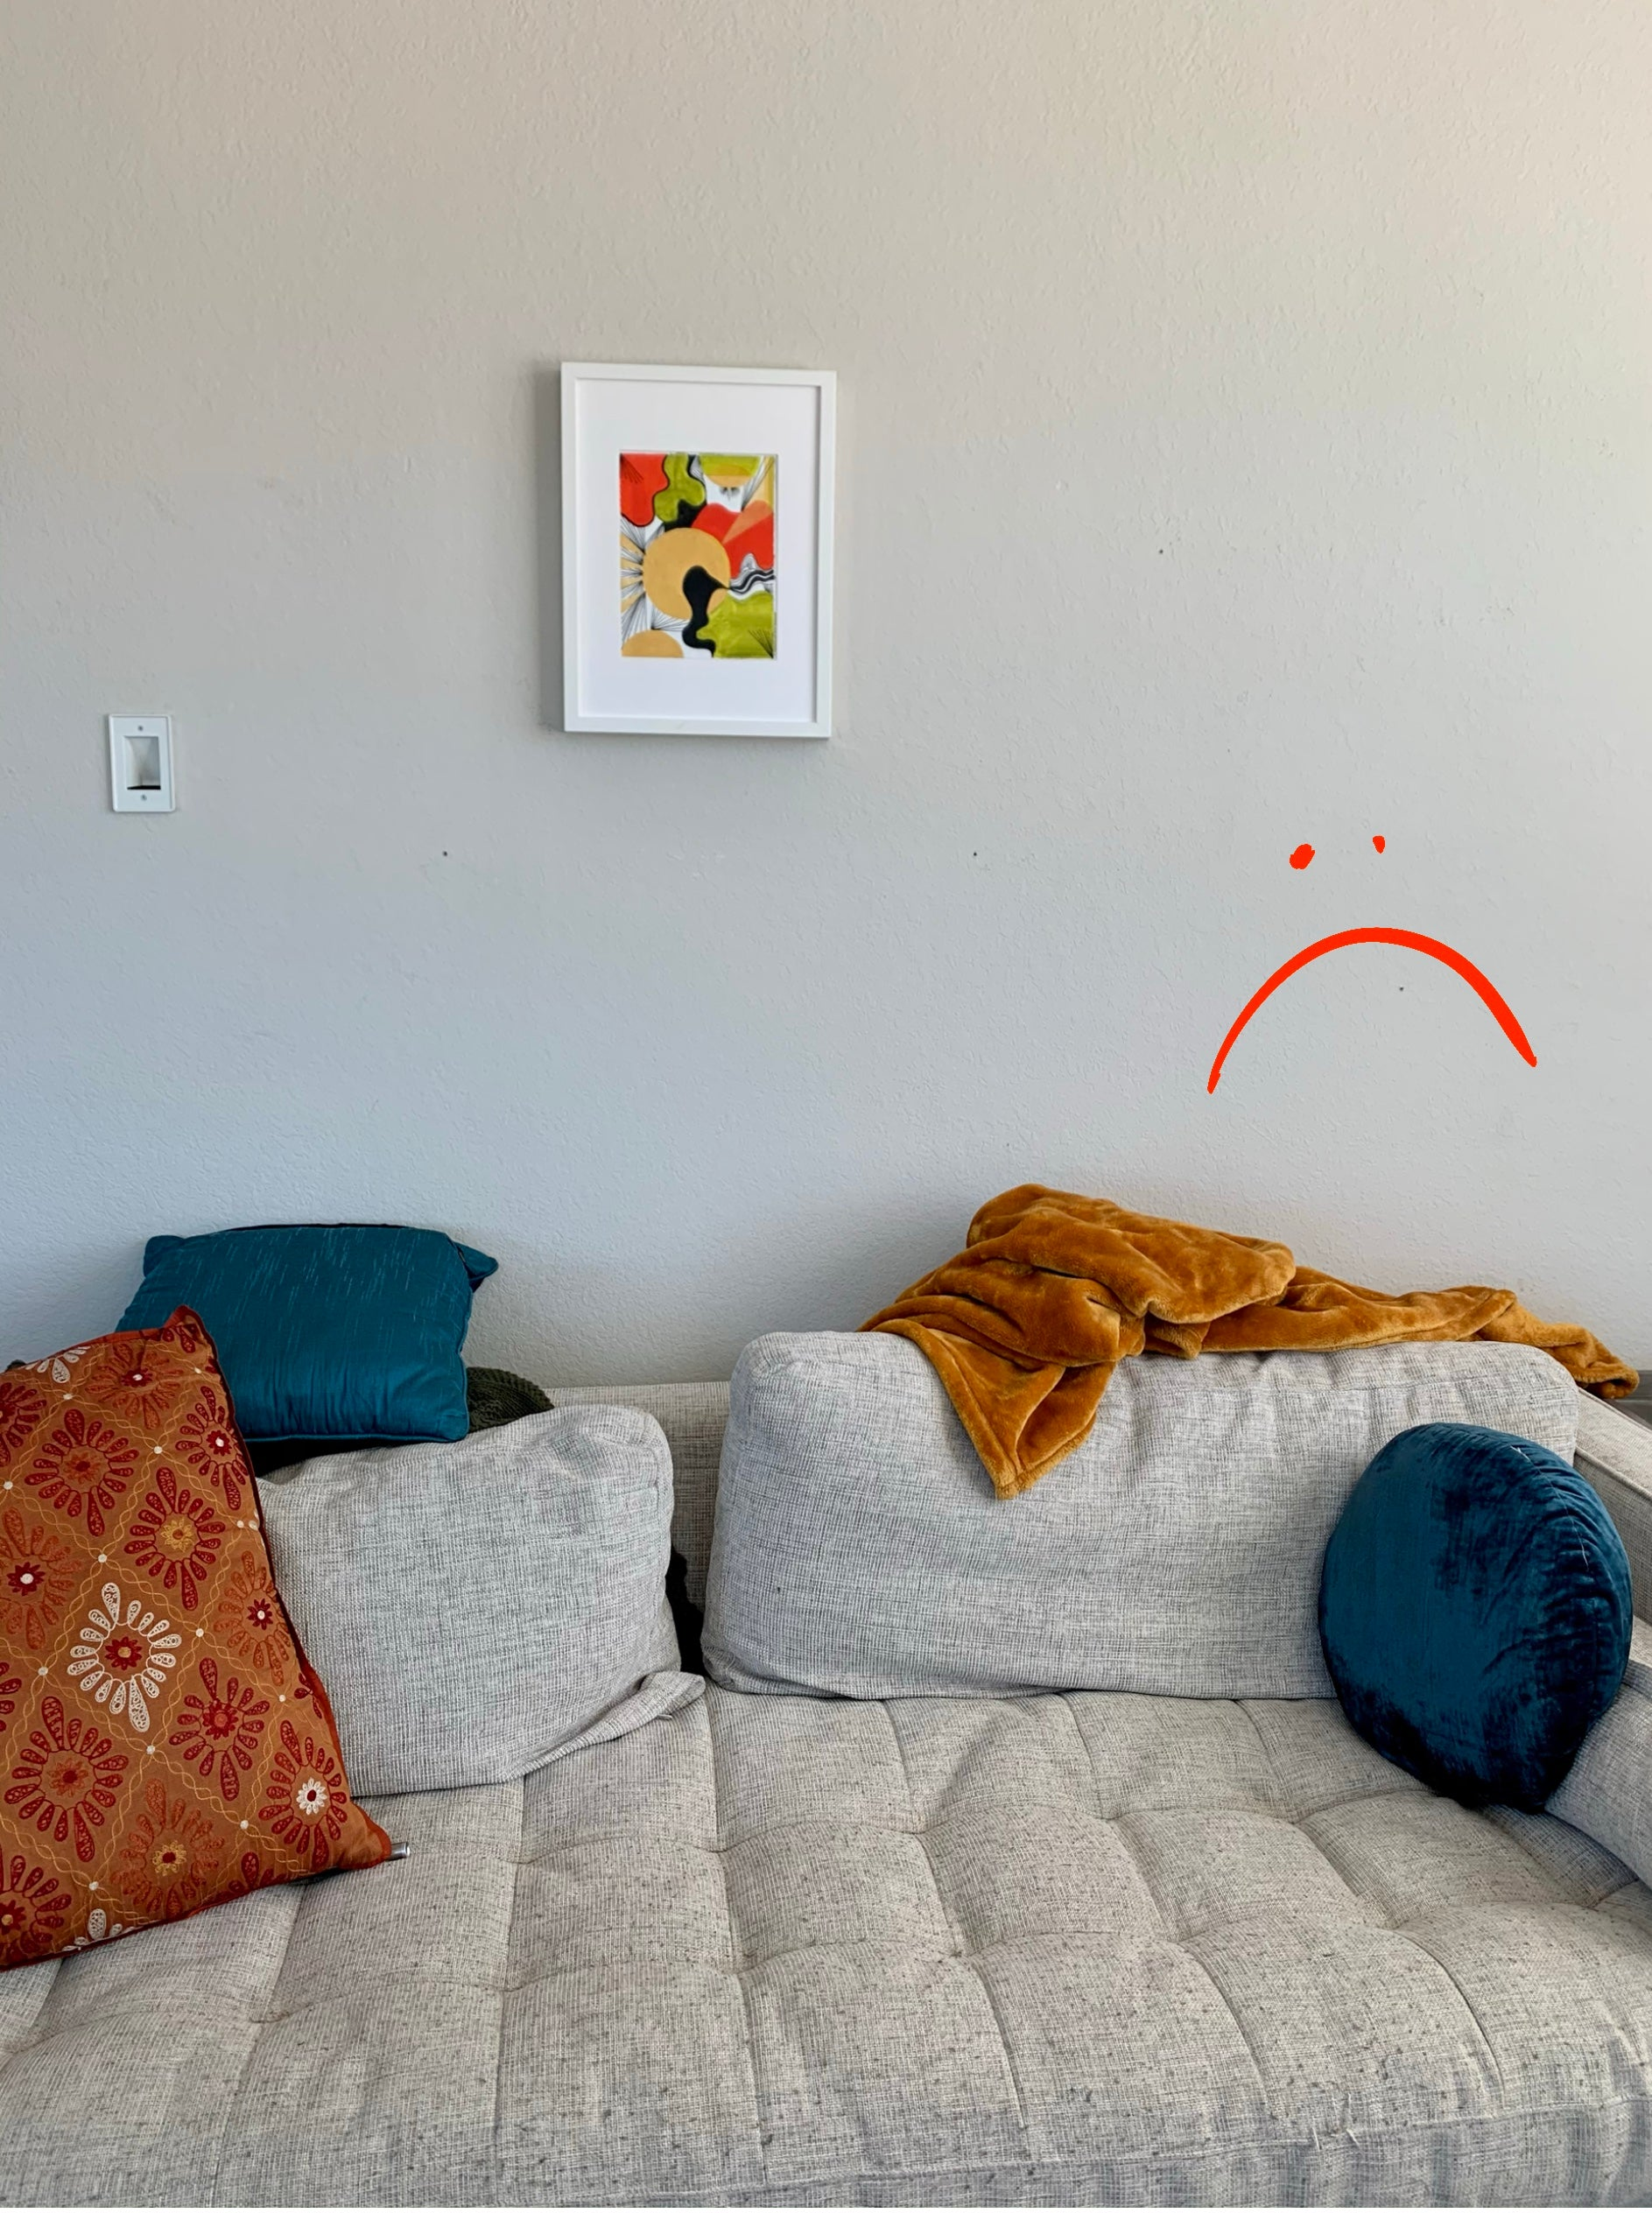 Image of a very small artwork above a light grey couch, covered with blankets and pillows. Sad face drawn on top of photo to show that the art is too small for this space!